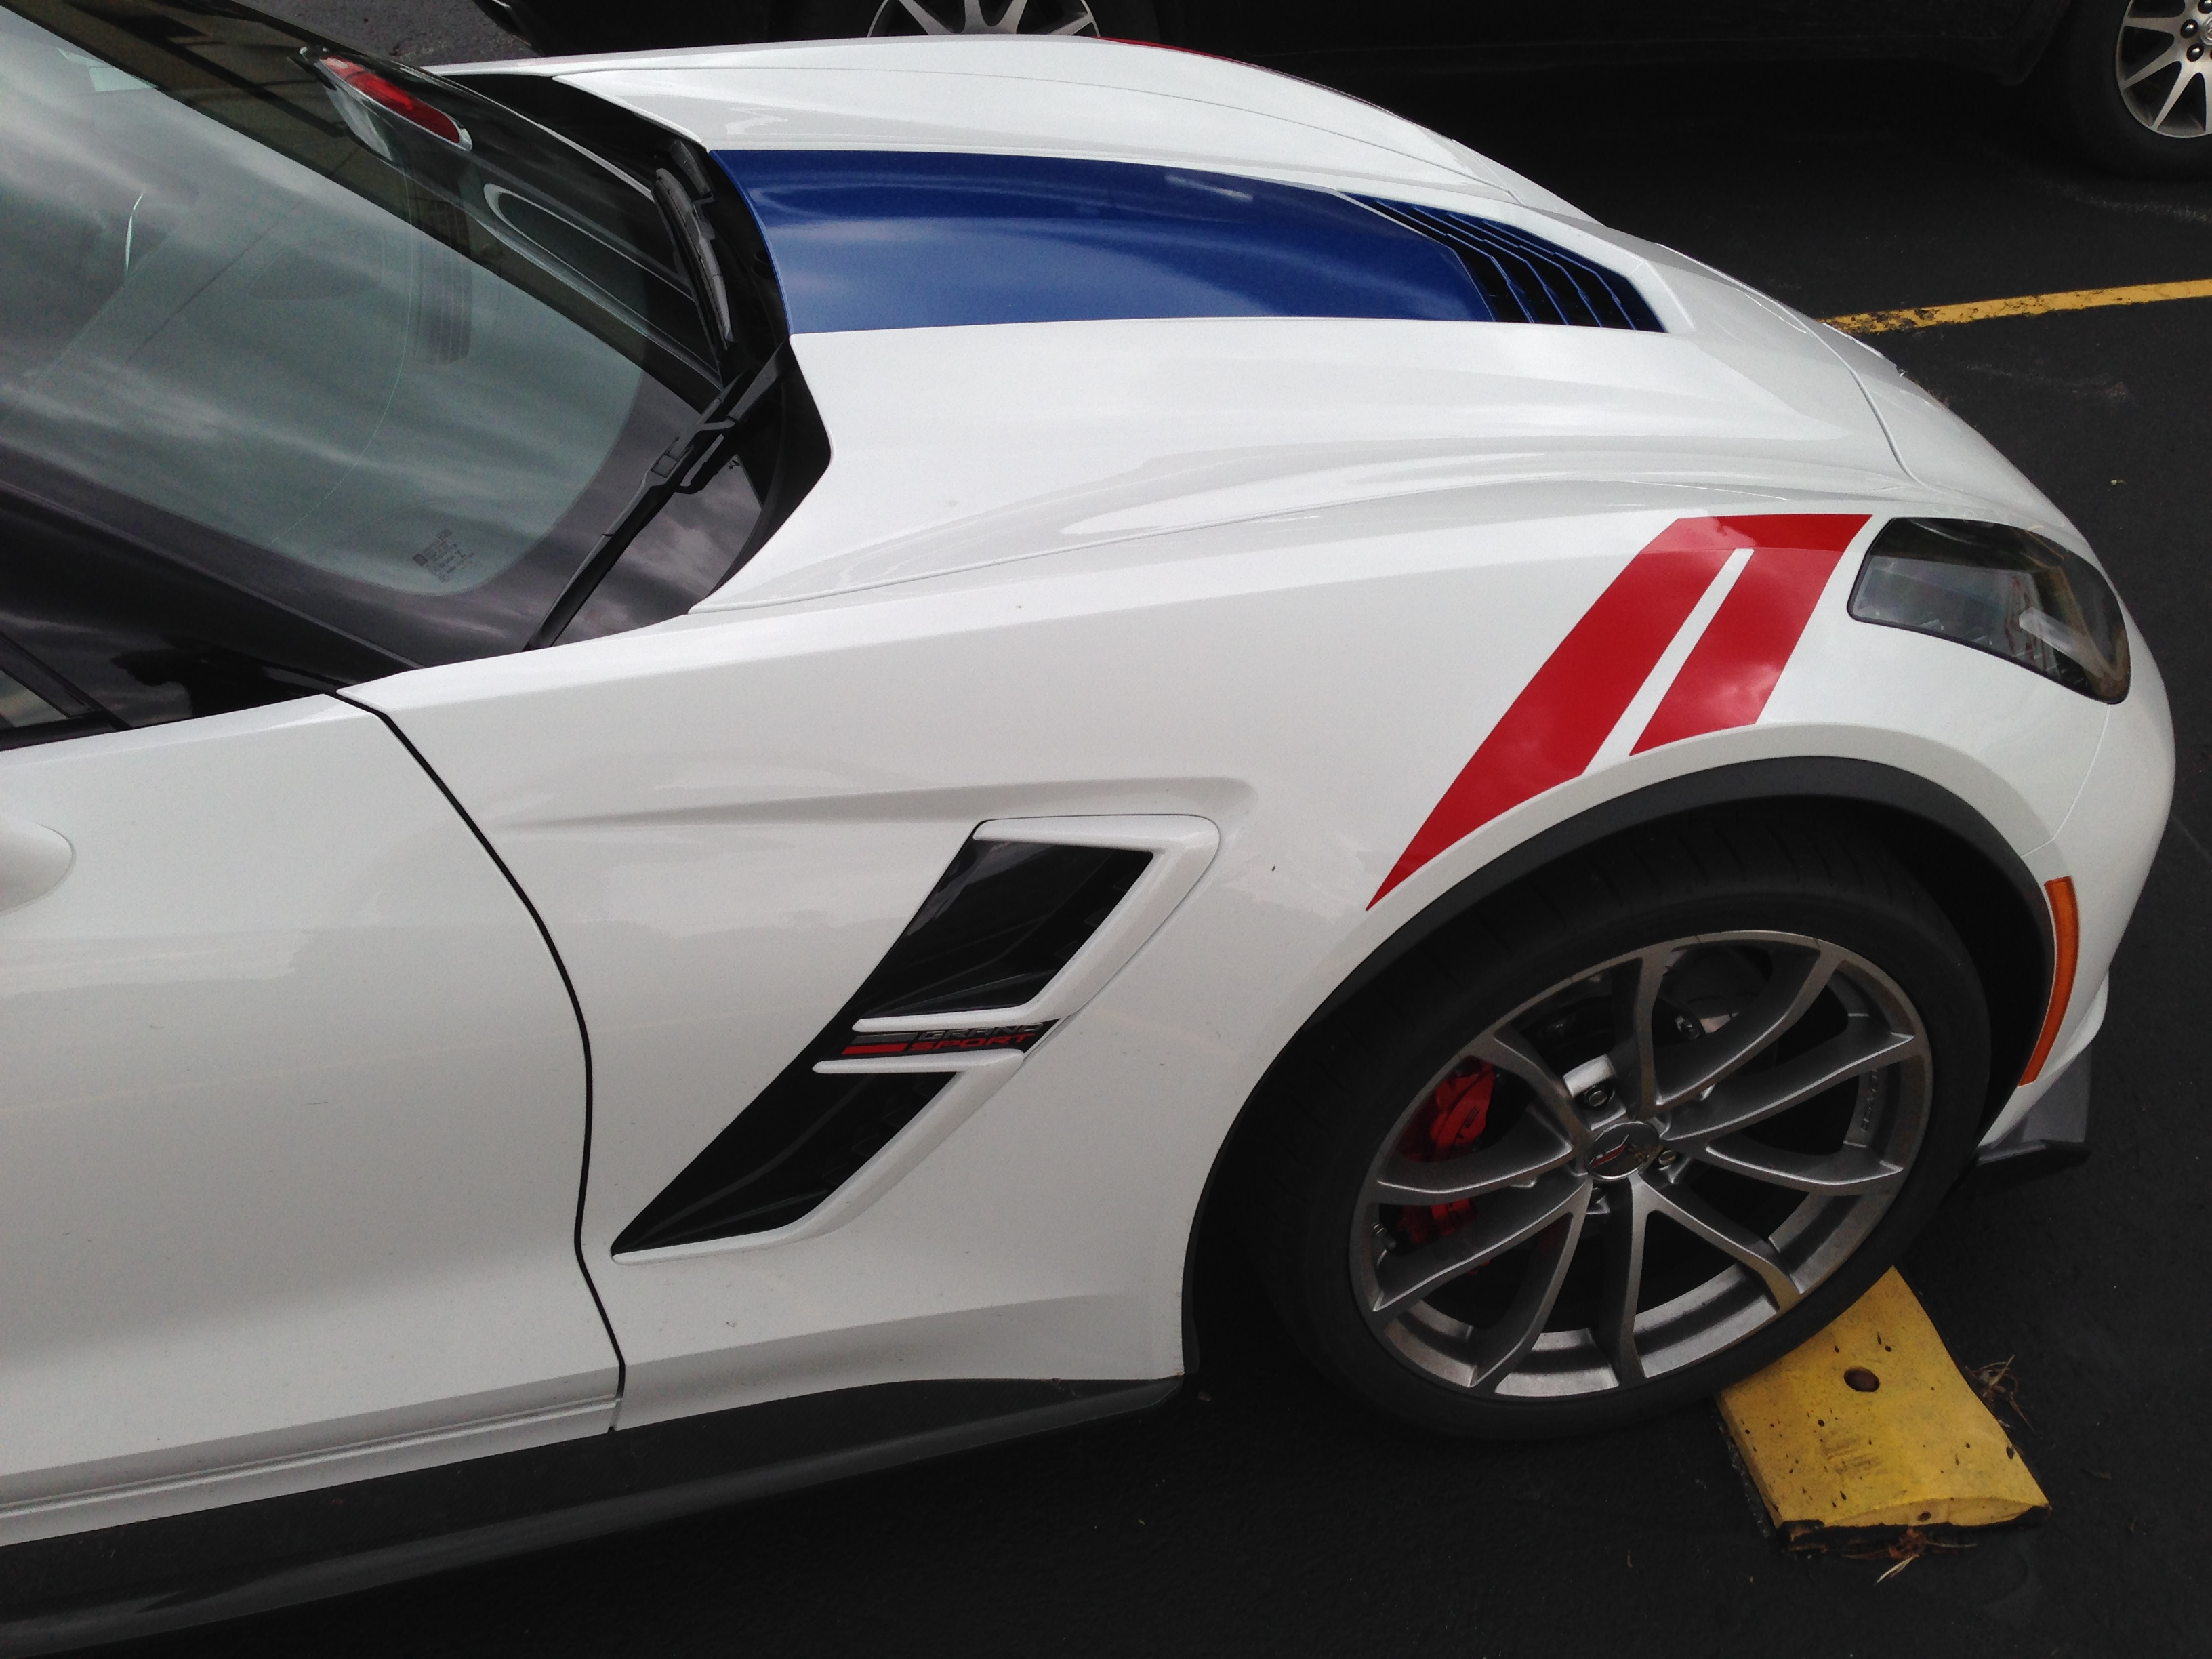 2017 corvette grand sport heritage package in arctic white corvette - Name Image Jpeg Views 23500 Size 1 49 Mb